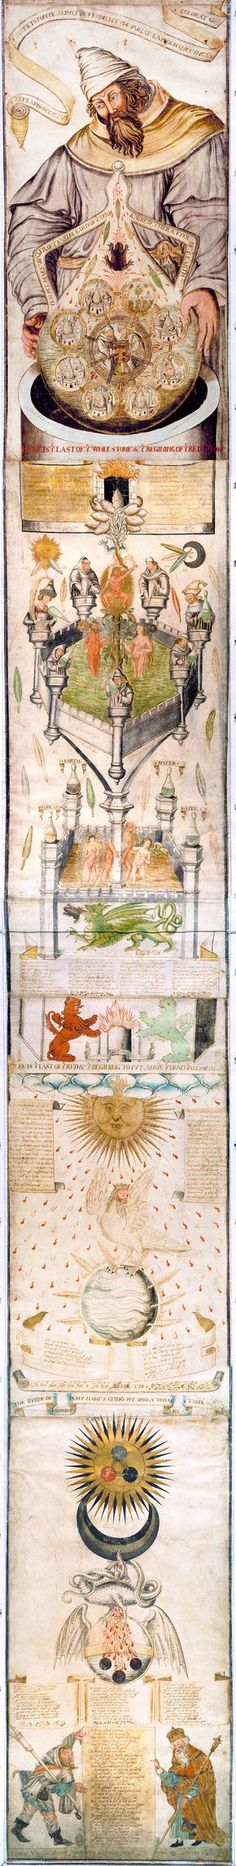 The Ripley scroll is a truly beautiful alchemical manuscript, attributed to George Ripley (c. 1415 – 1490), Canon Regular of the priory at Bridlington in Yorkshire